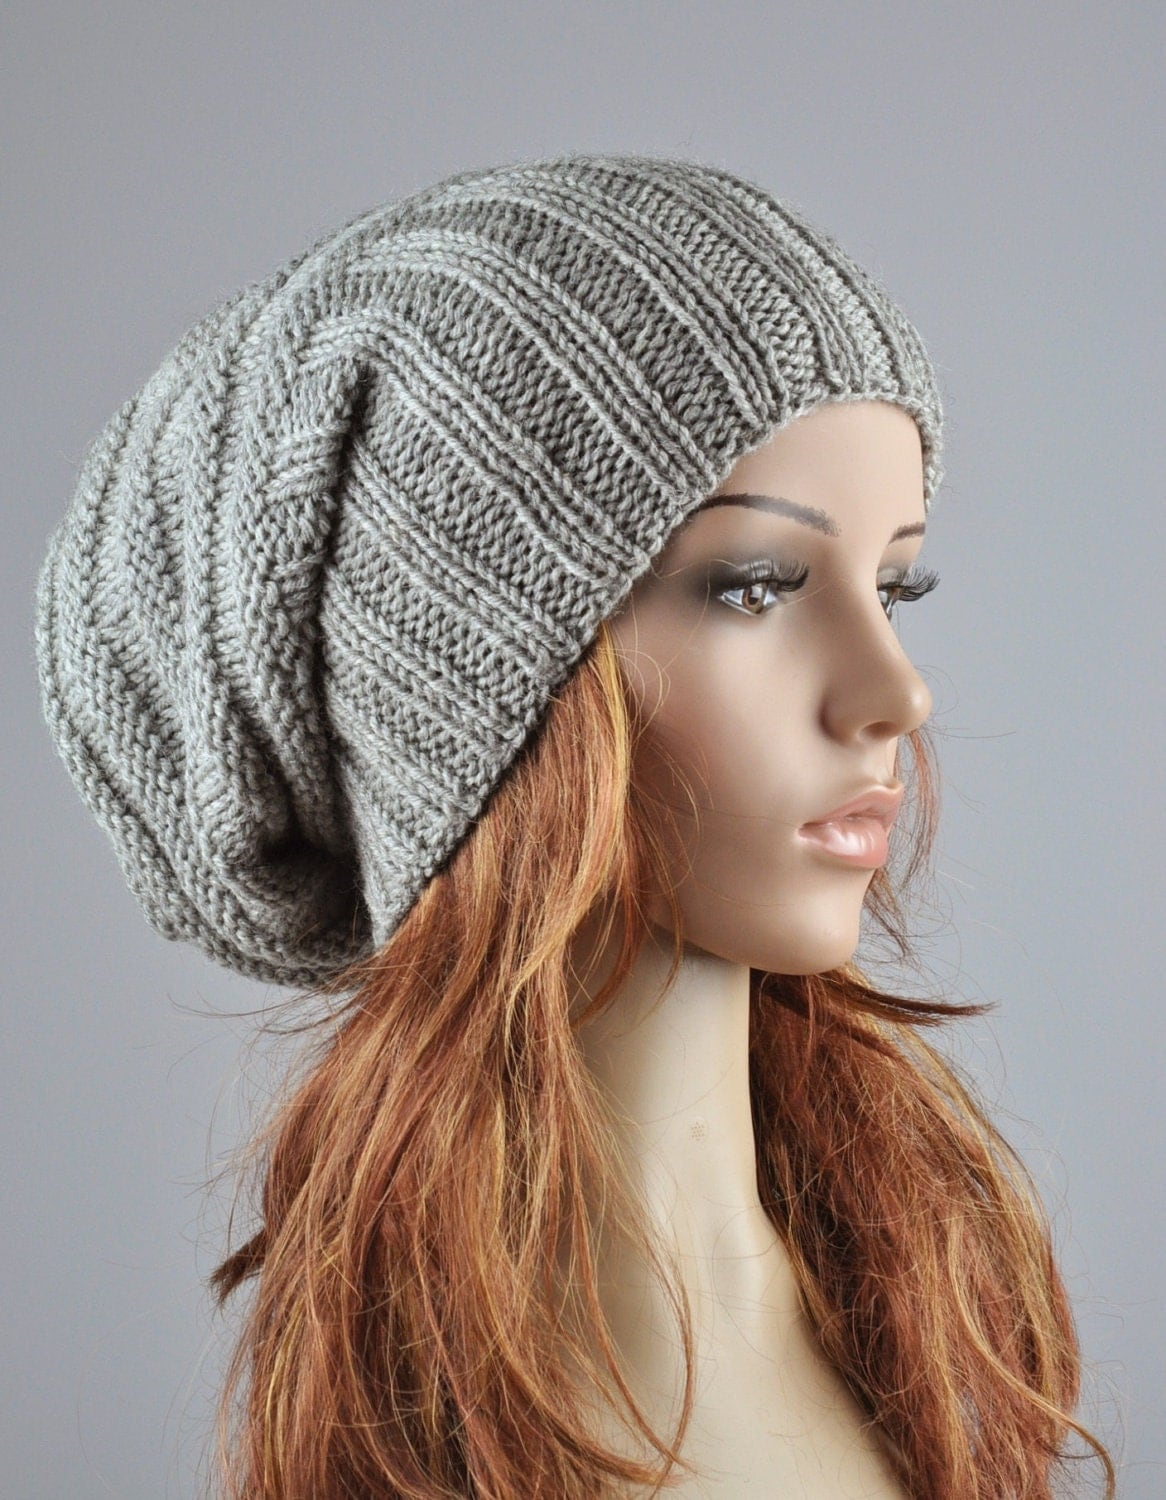 Hand knit hat woman winter hat Light Grey Chunky Wool Hat